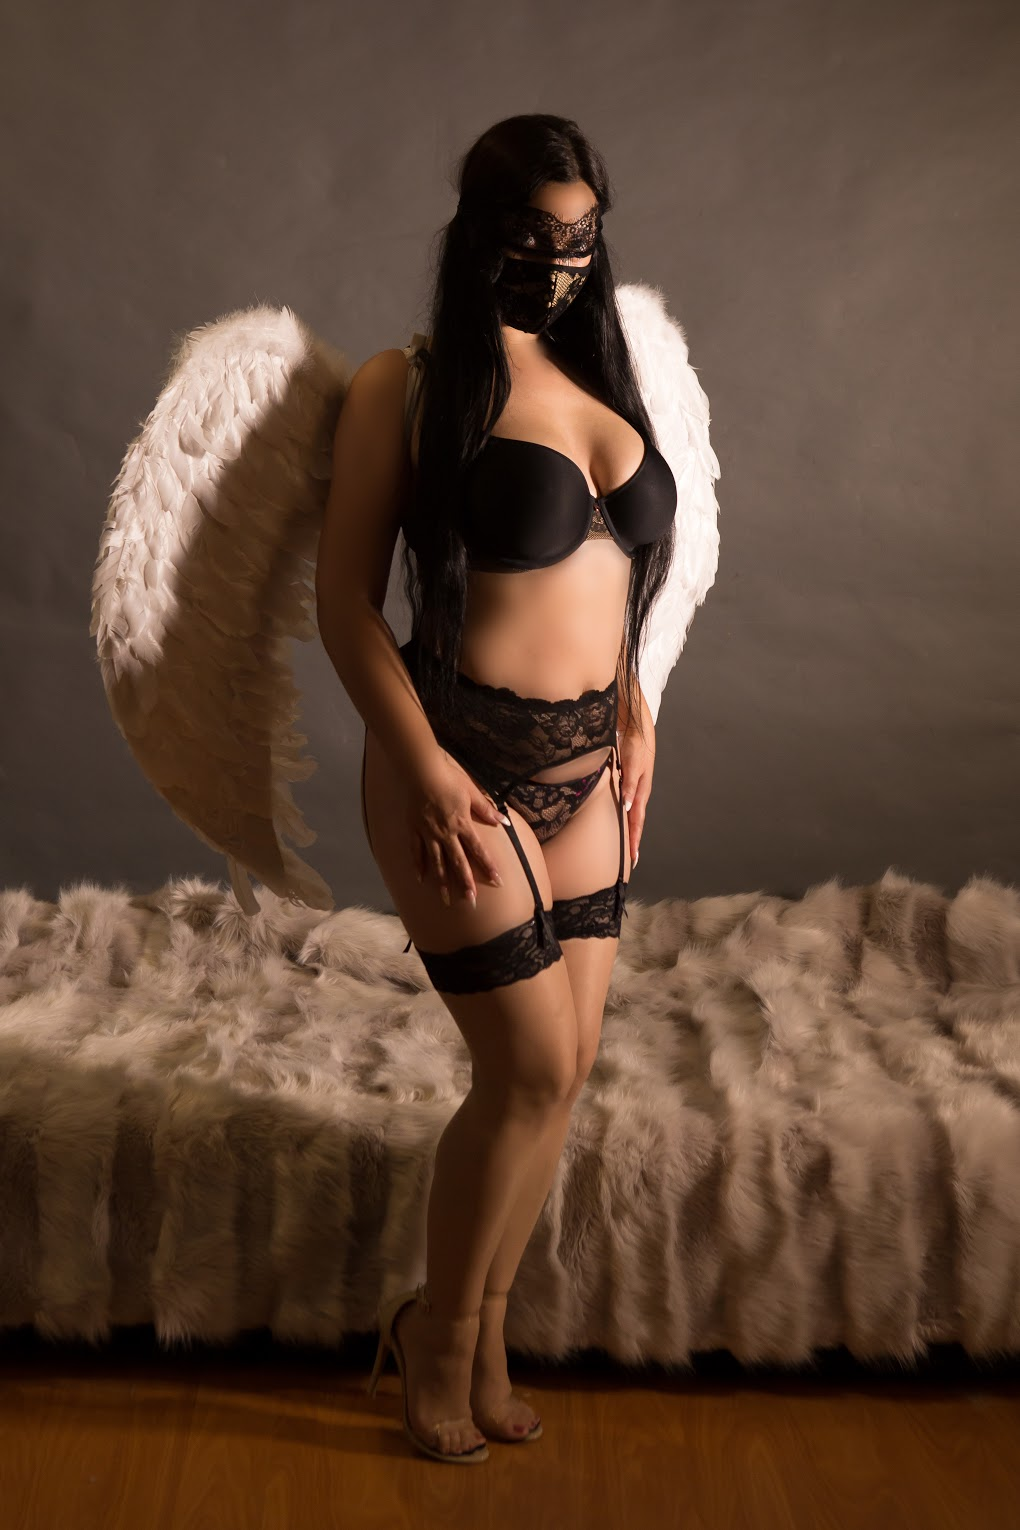 Sensuous, erotic massage by our beautiful massage therapist Alaia